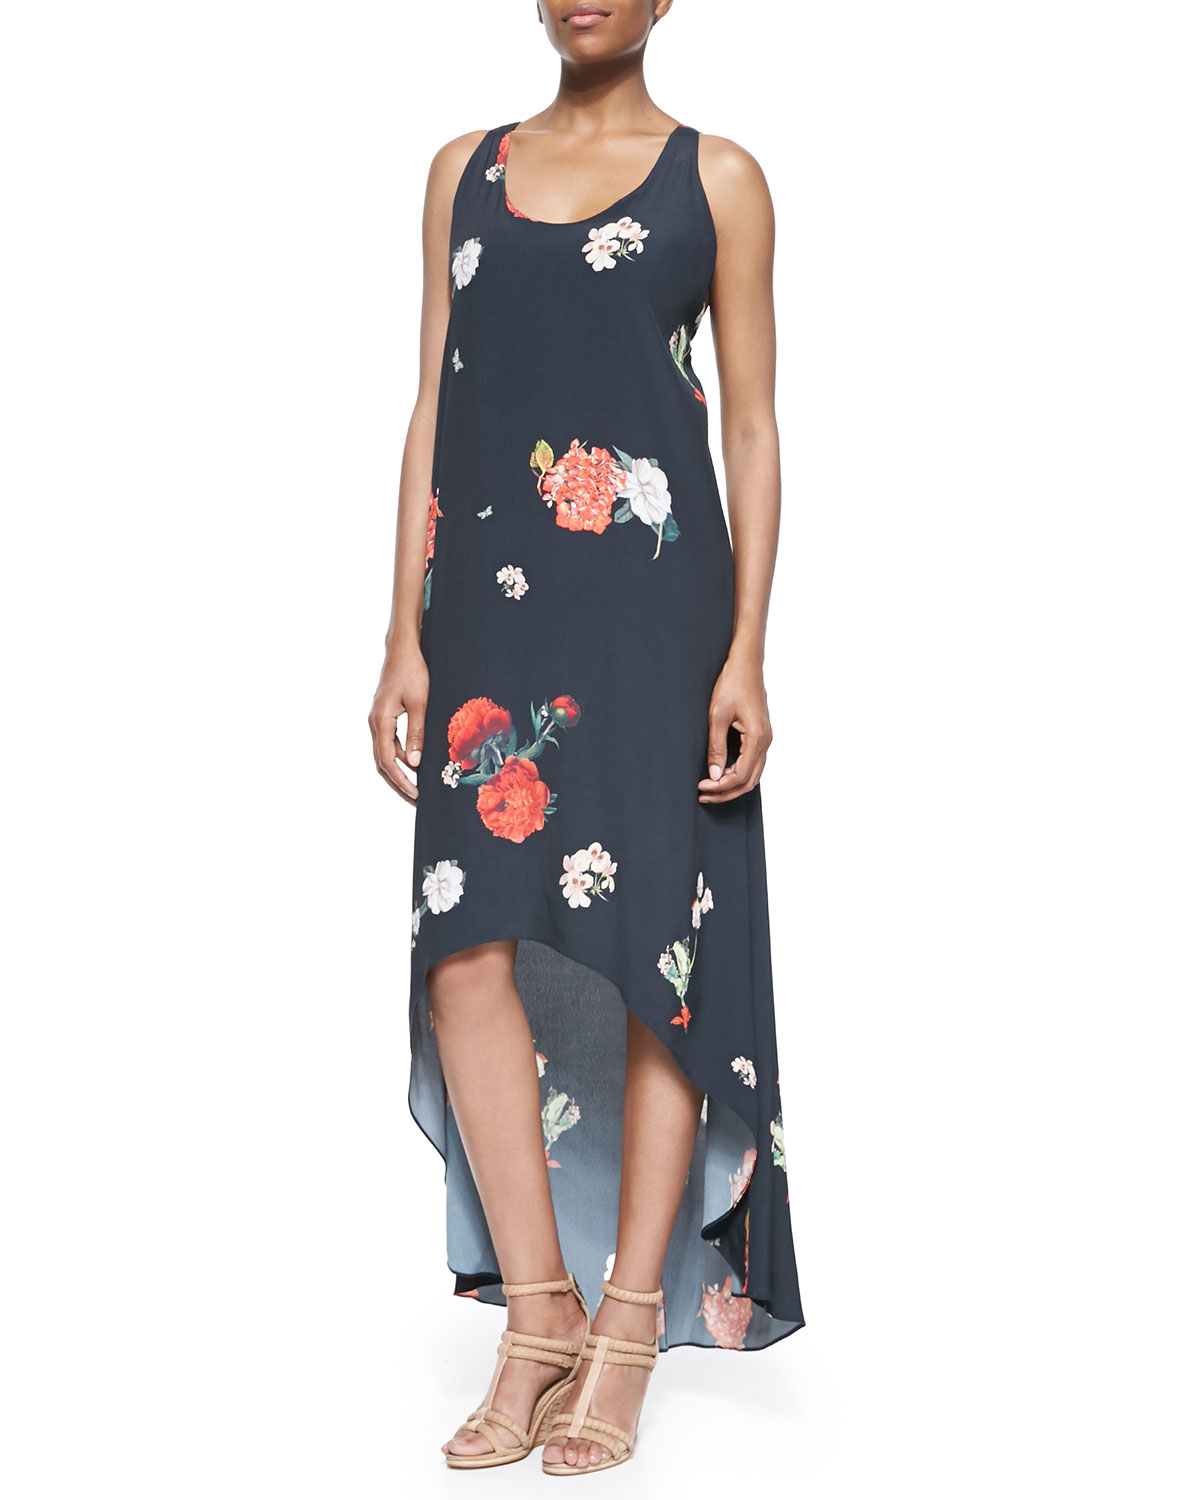 Womens Veronica Floral Print High Low Dress   Alice + Olivia   Castaway floral